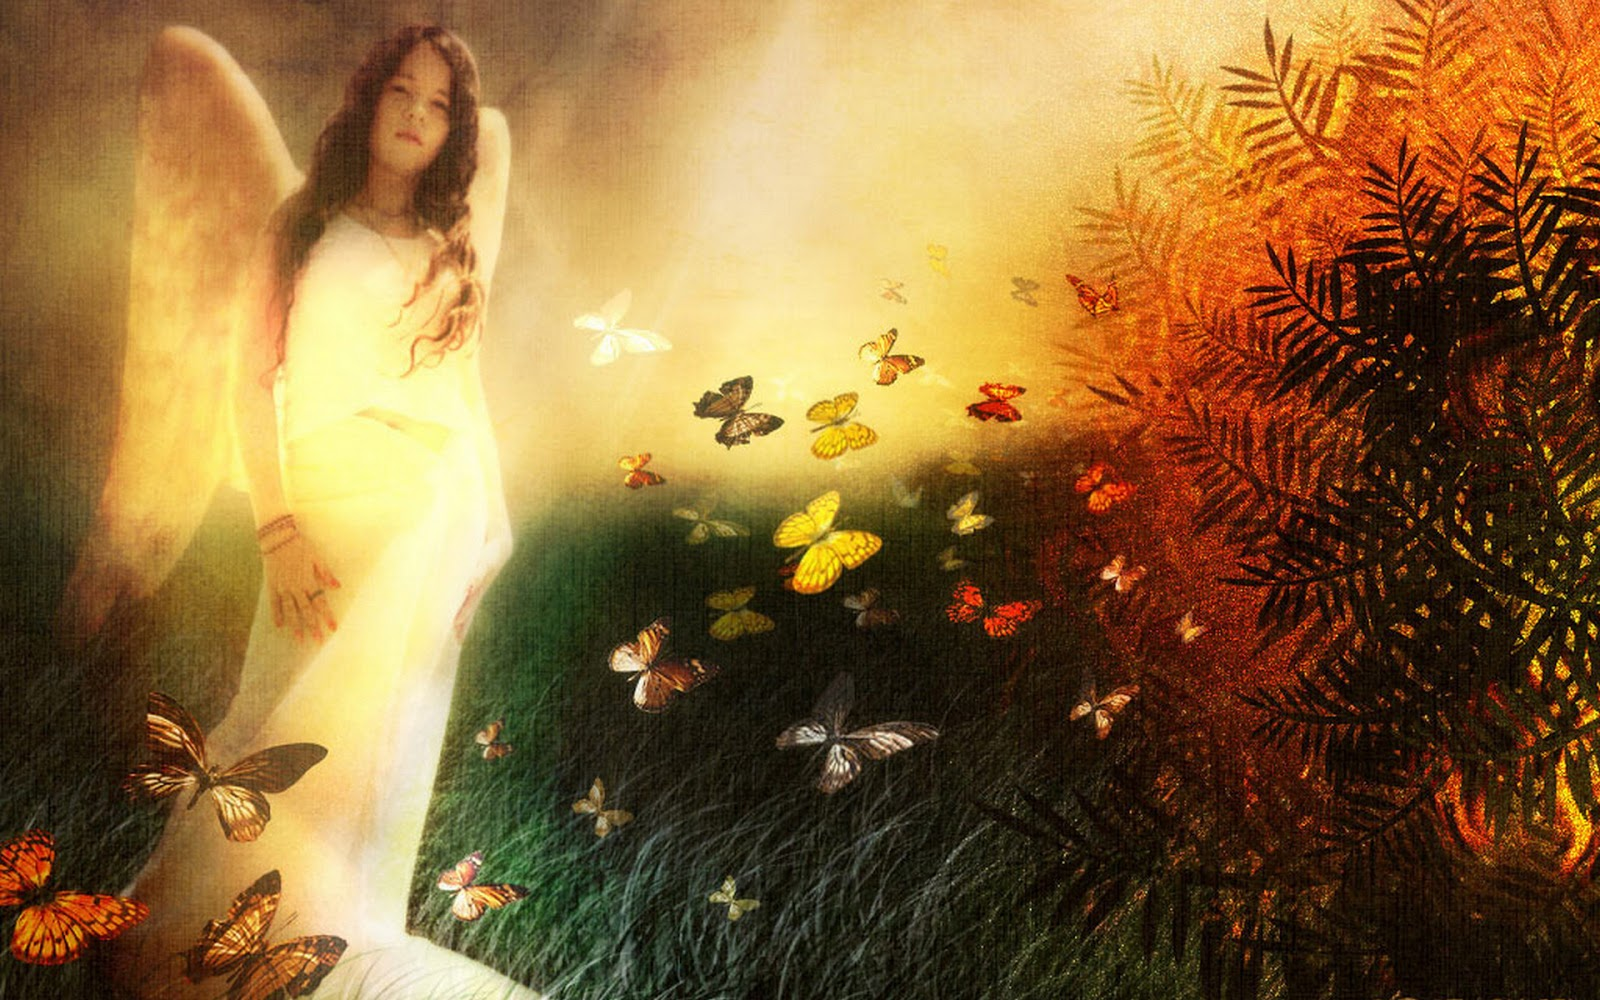 Fantasy Angel Photoshop Designs HD wallpapers 1920x1200 download 1600x1000